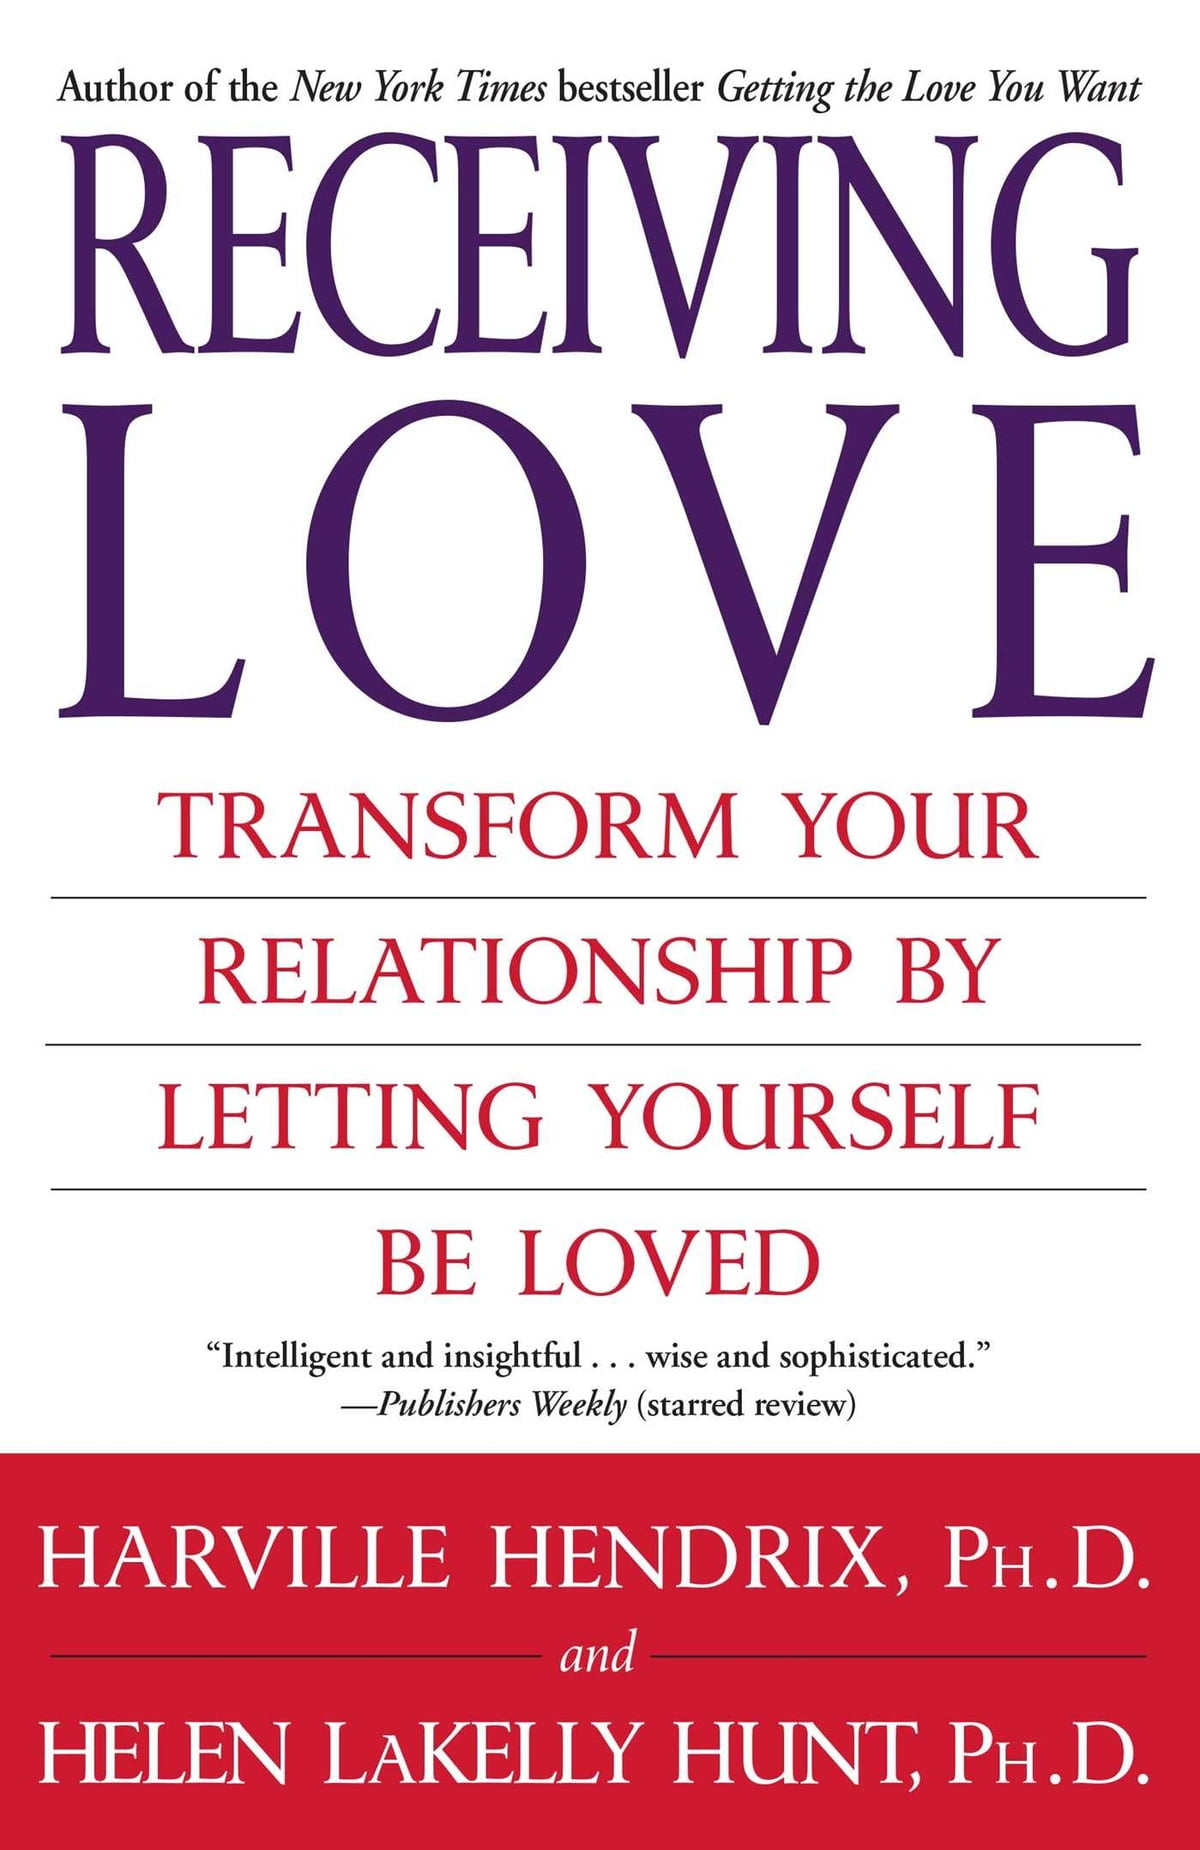 Receiving Love eBook by Harville Hendrix, Ph.D. - 9781416507642 ...